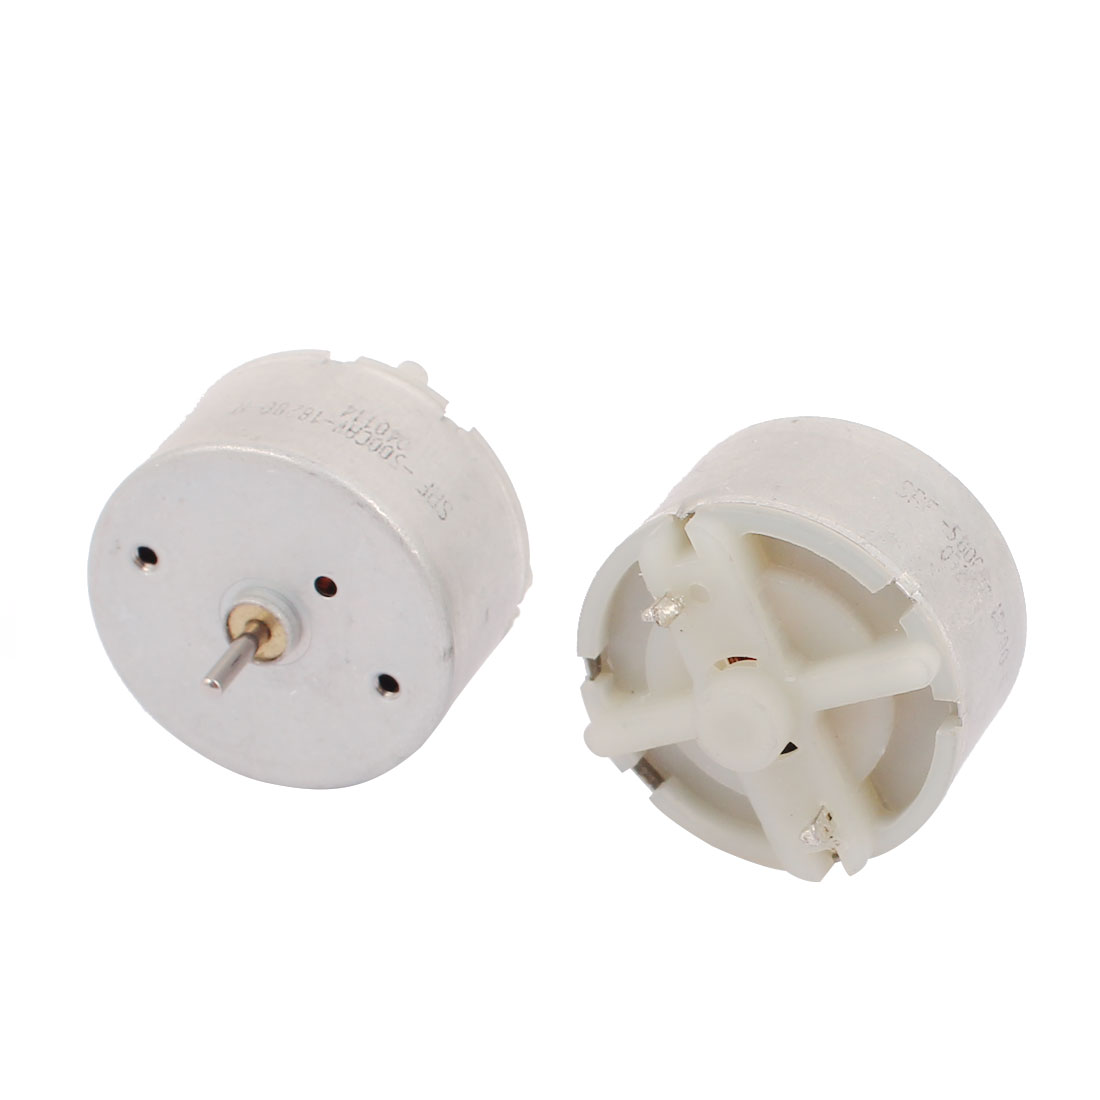 2Pcs DC 3-12V 18000RPM Large Torque Cylindrical Micro Motor for Electric Massage